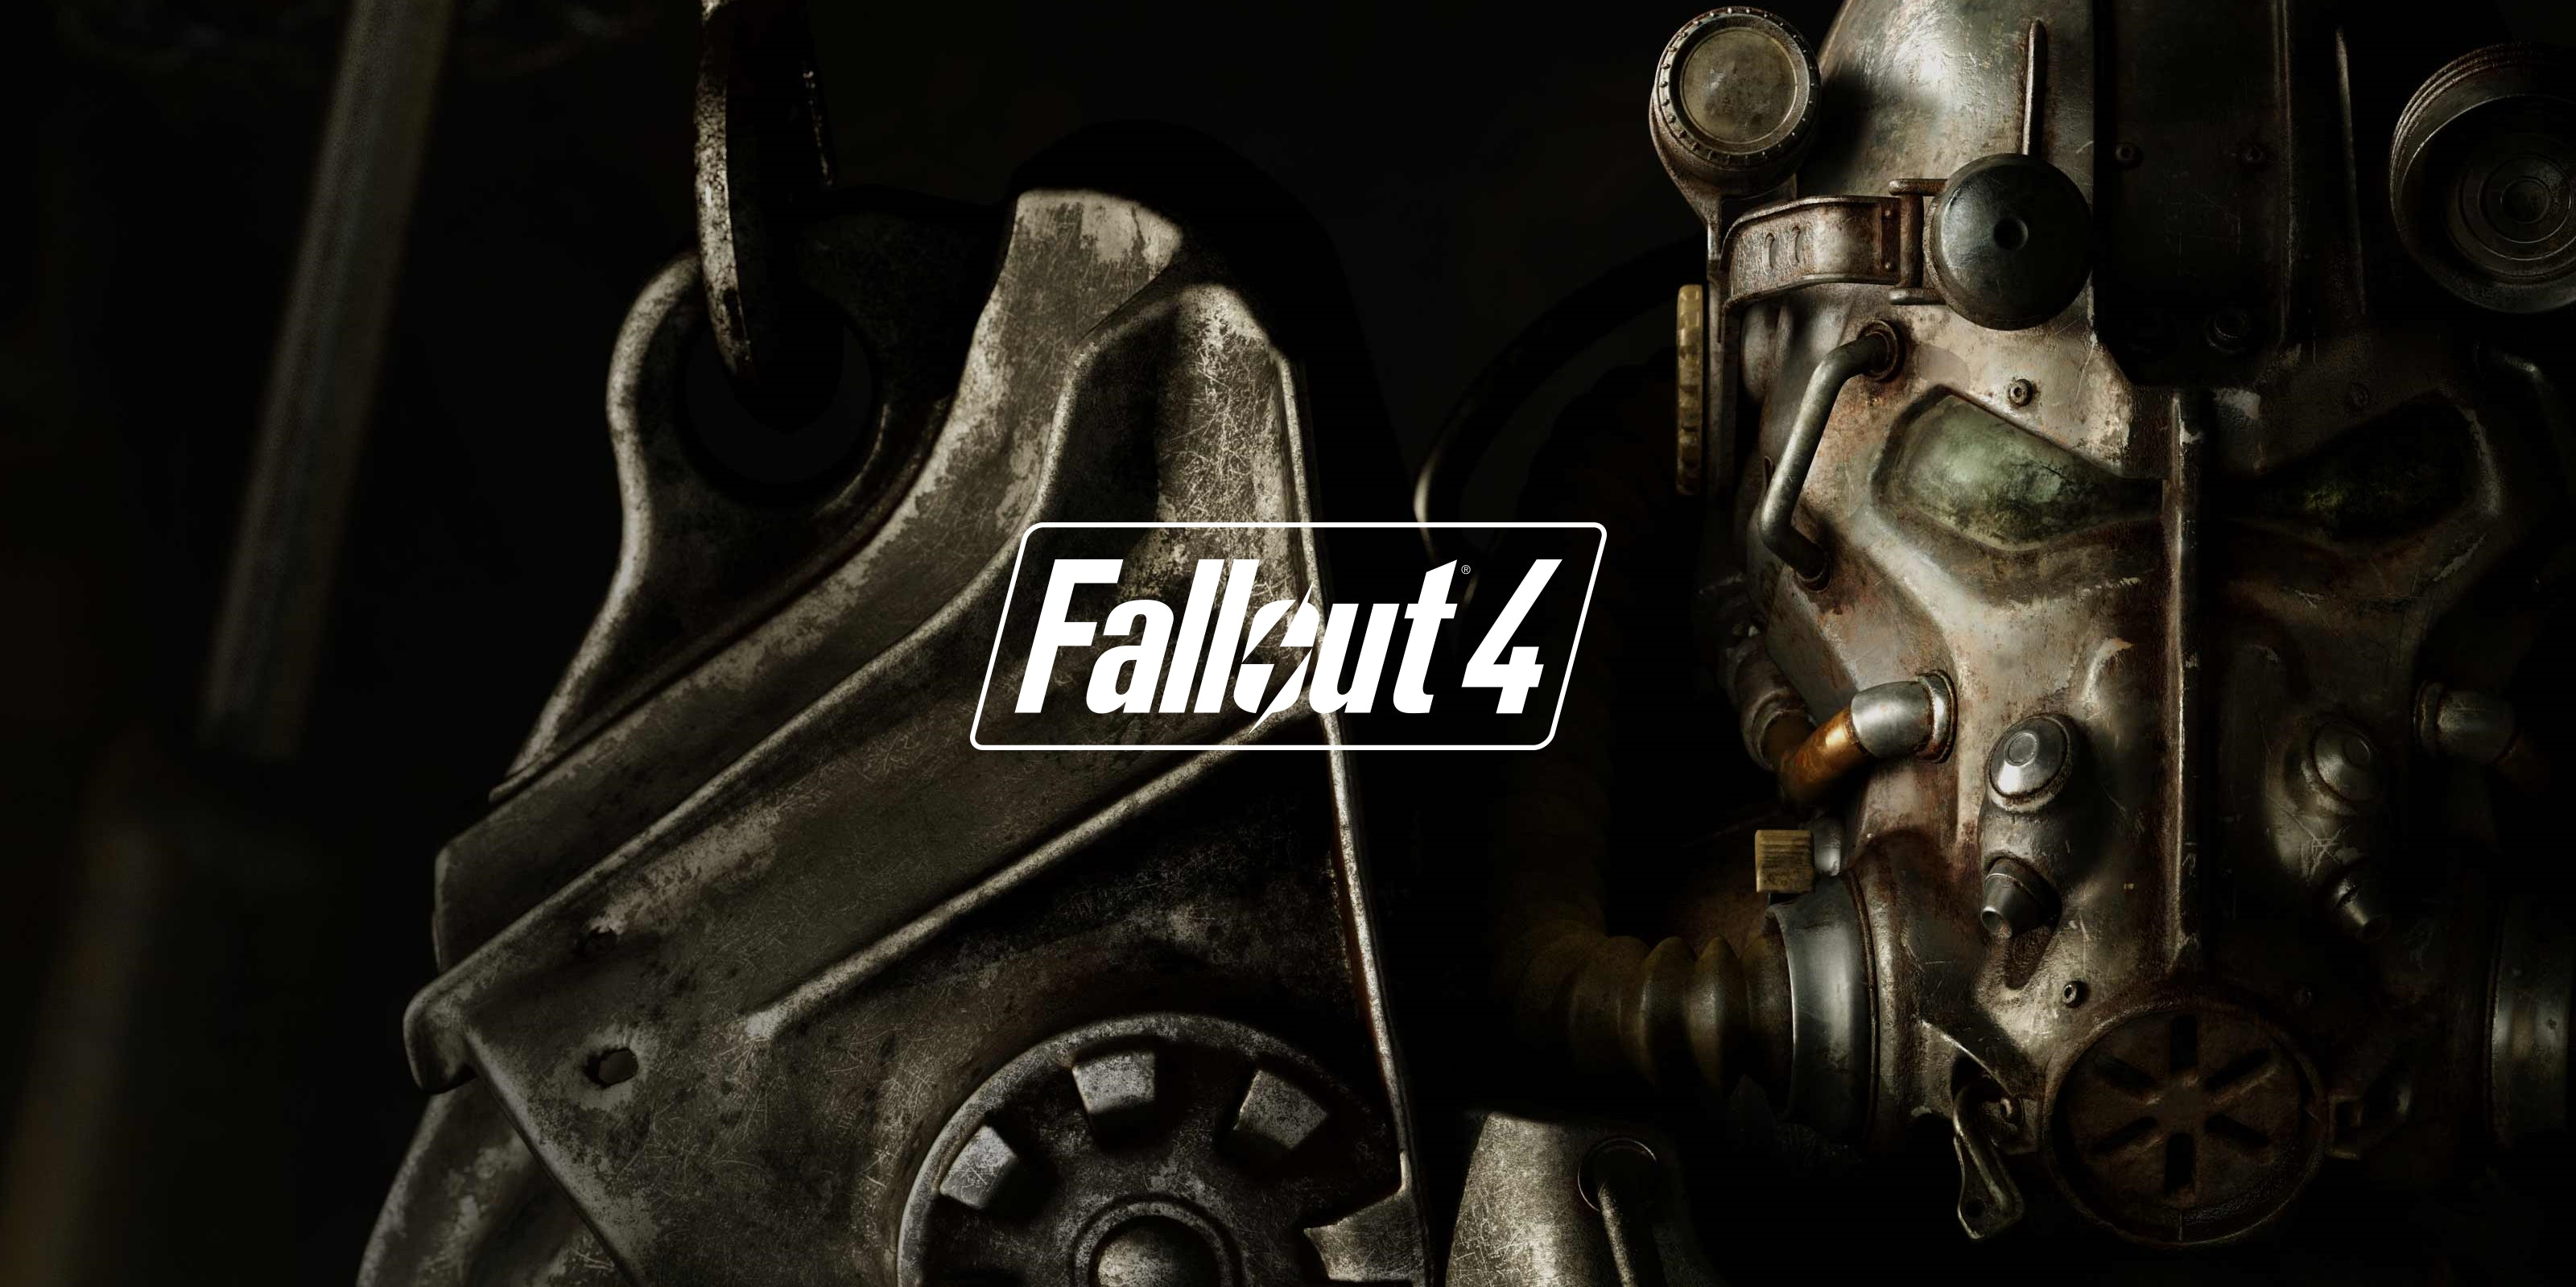 The Ballad of 'Fallout 4''s Ruthless Dictator, Major Ghastly